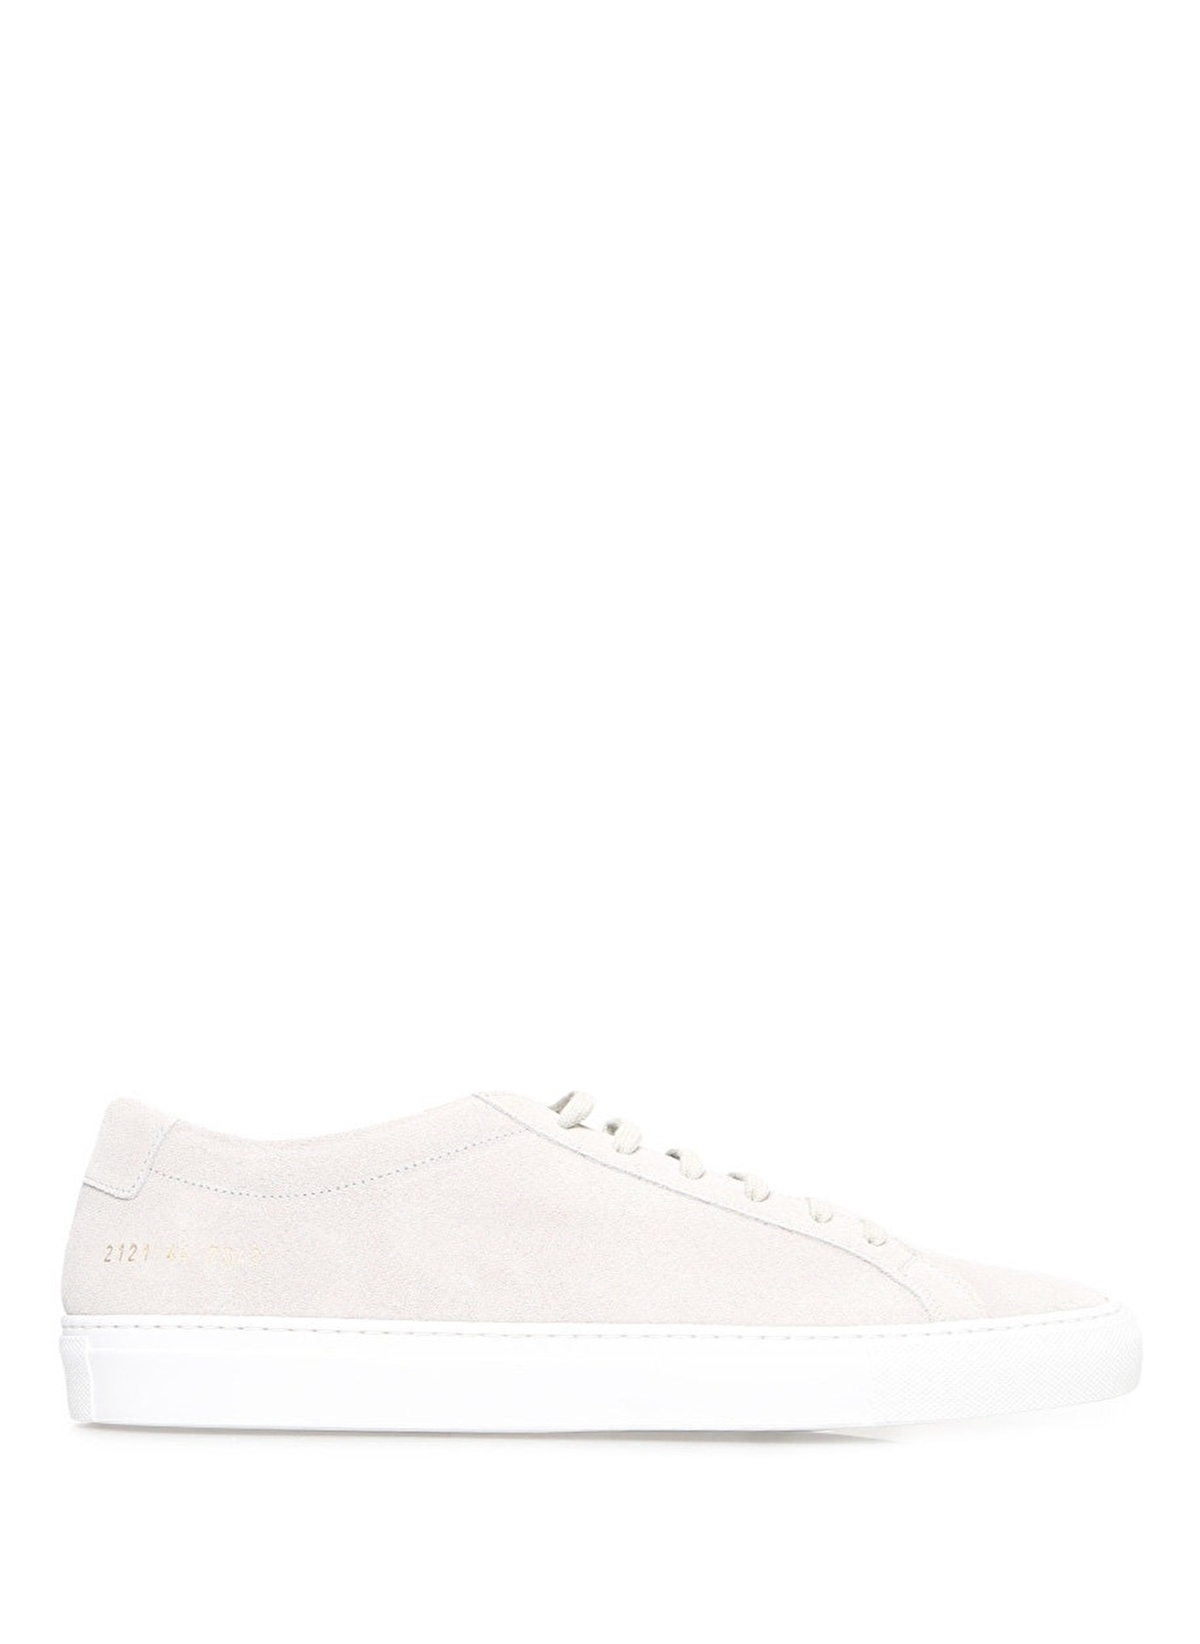 Common Projects Lifestyle Ayakkabı 101234015 E Sneakers – 2595.0 TL